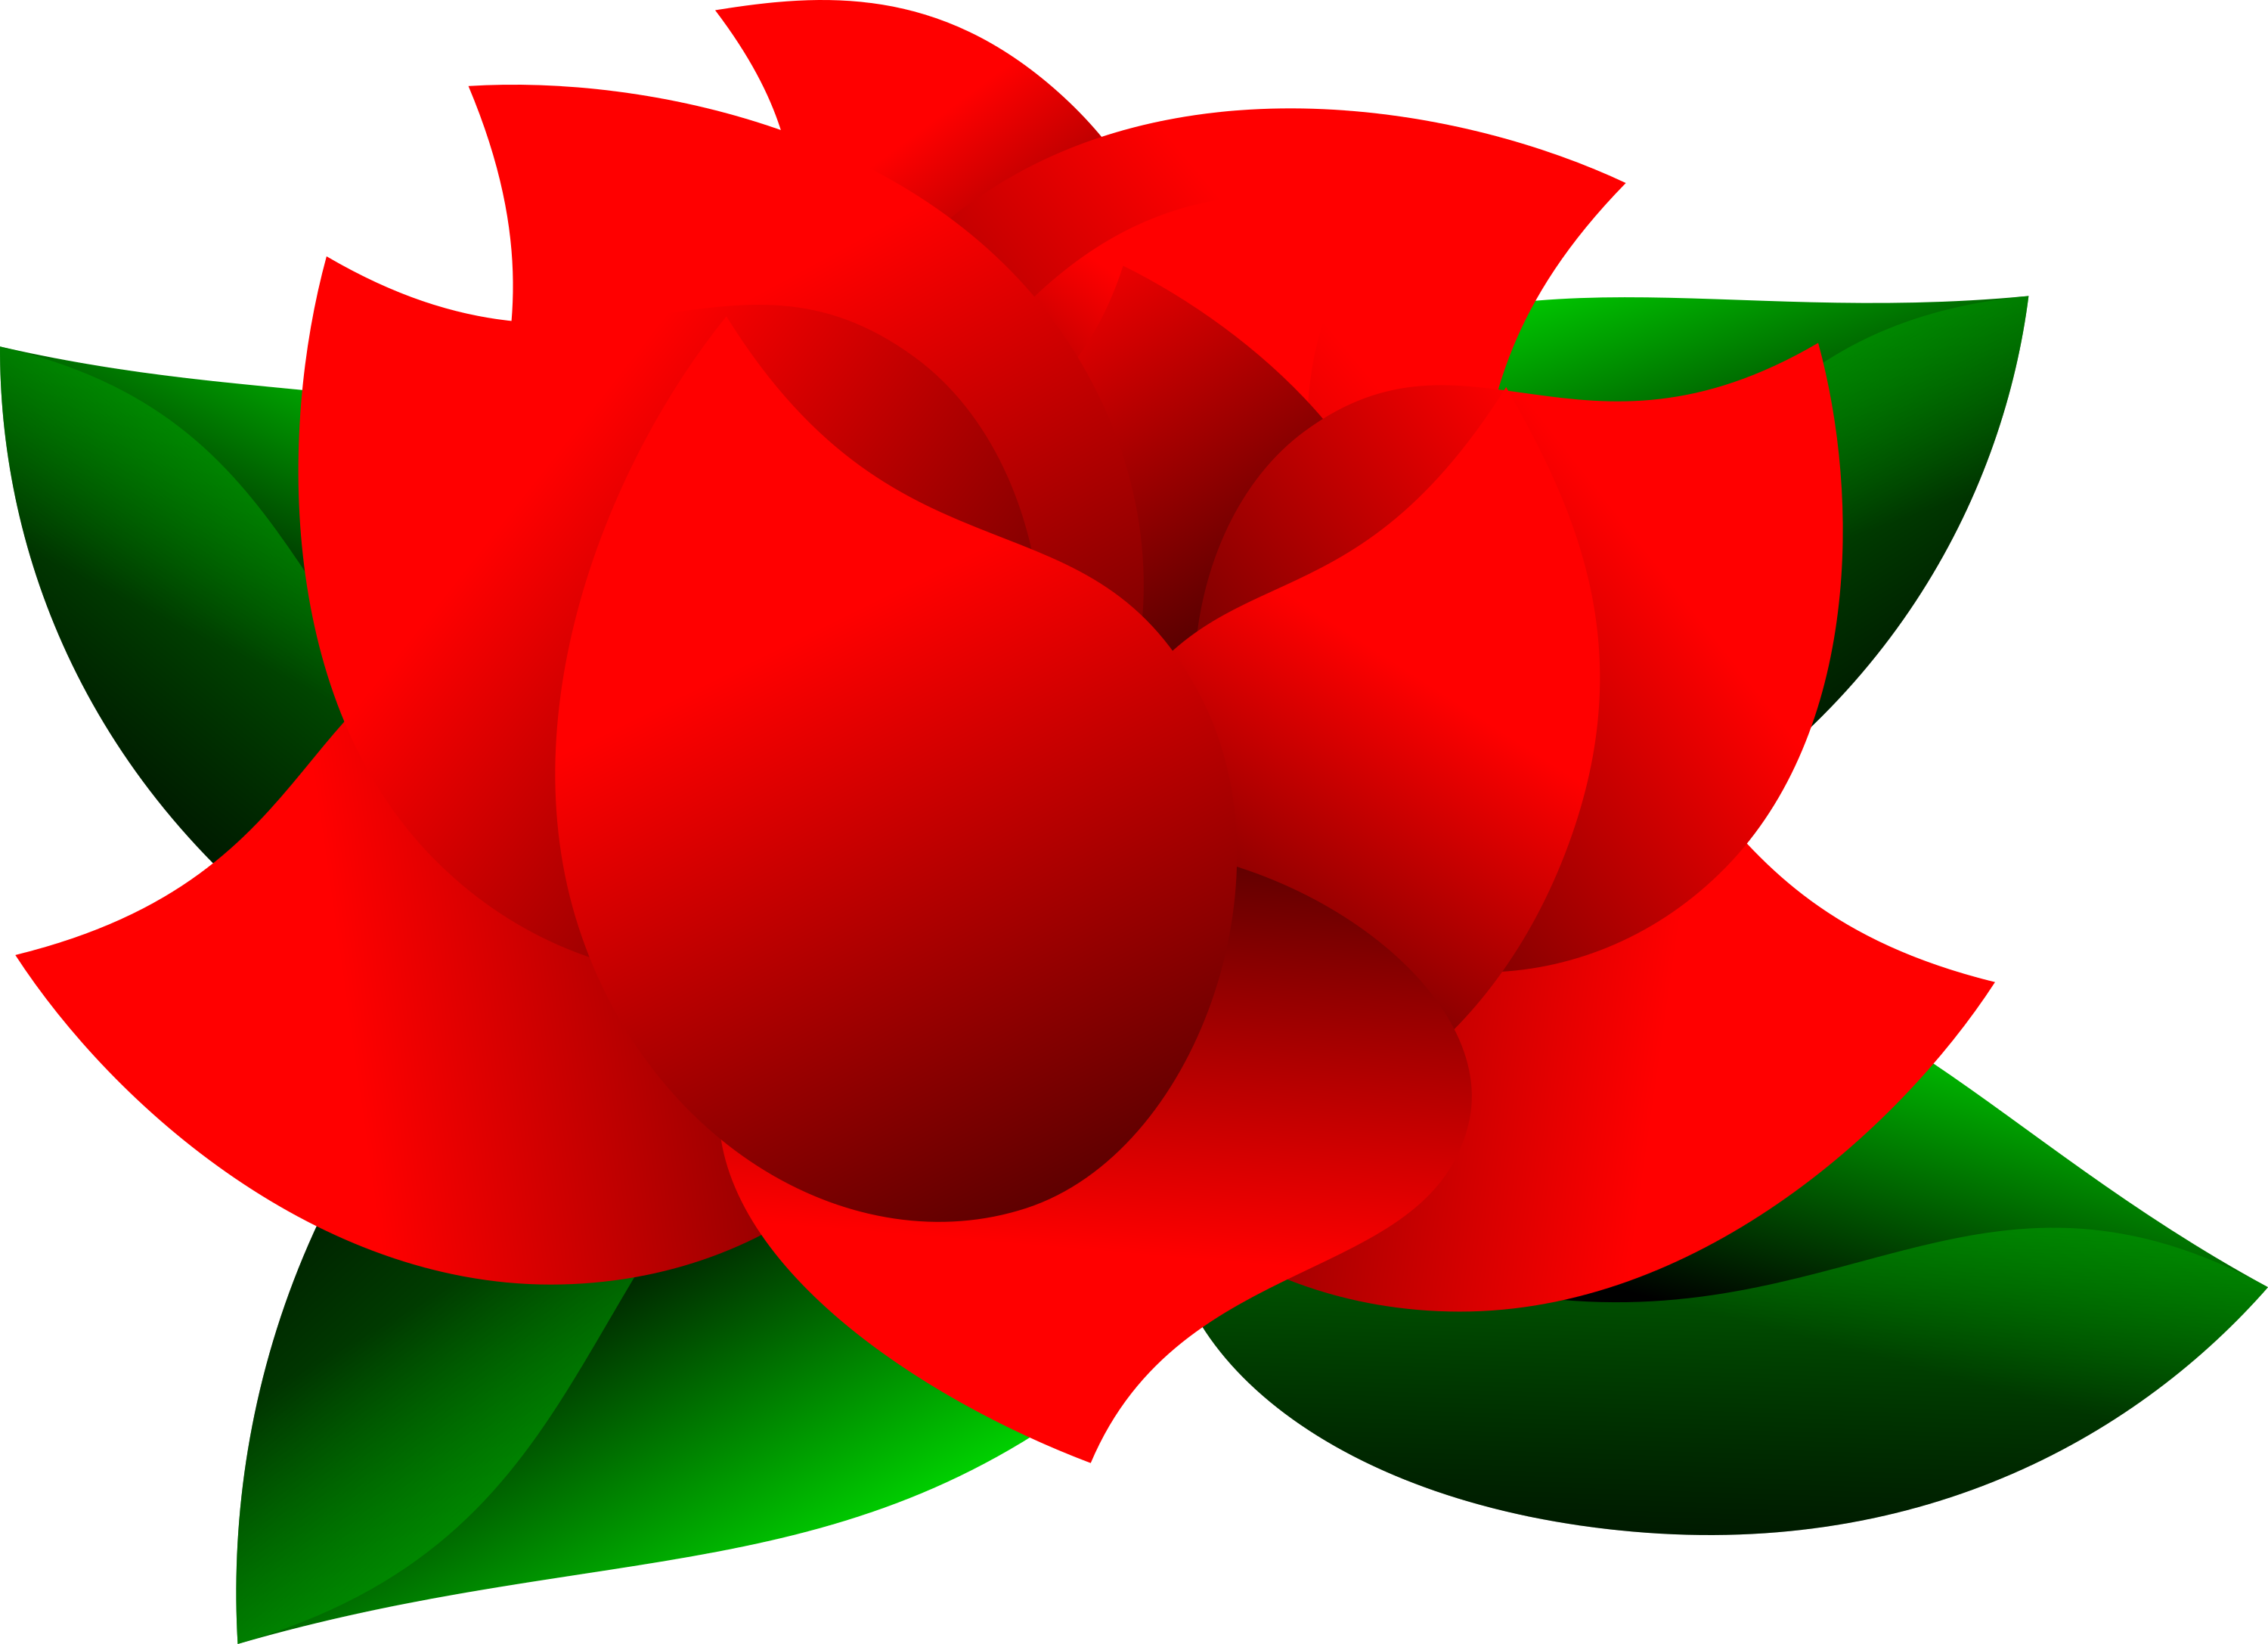 Rose clipart snake. Beautiful red with green